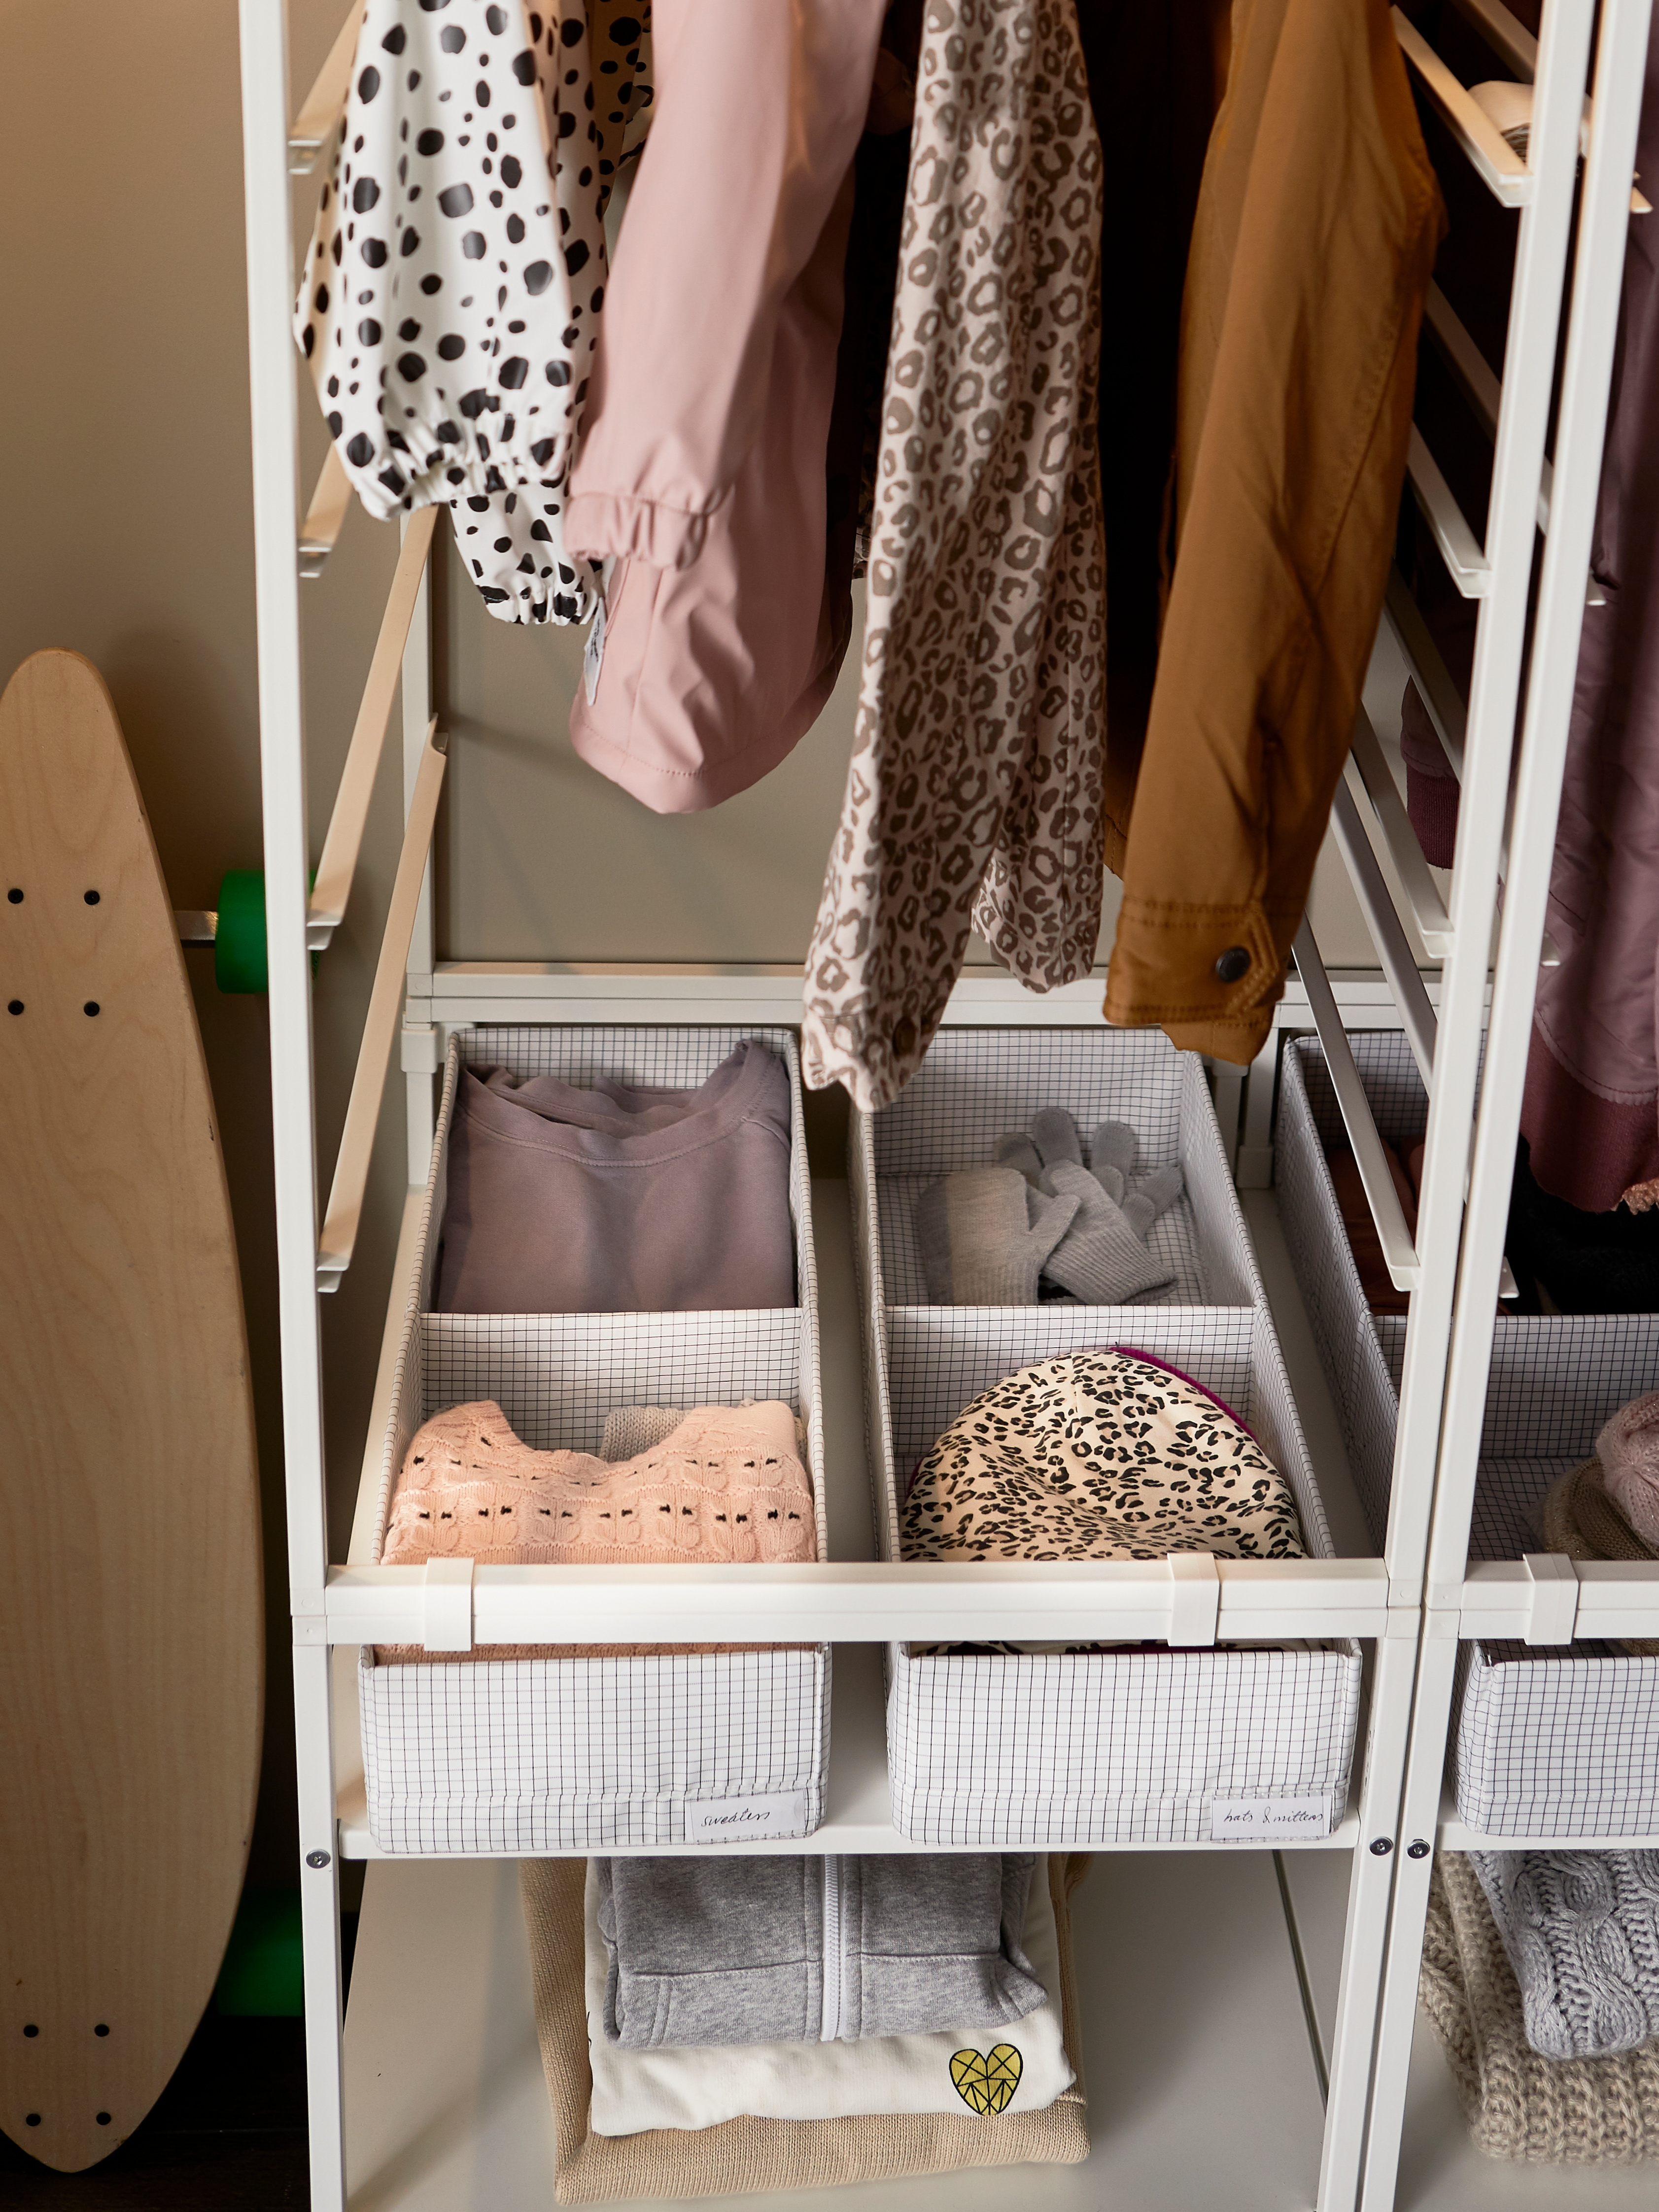 Bottom shelves of a white-coated steel JONAXEL open storage system that have divided boxes holding sweaters, hats and gloves.